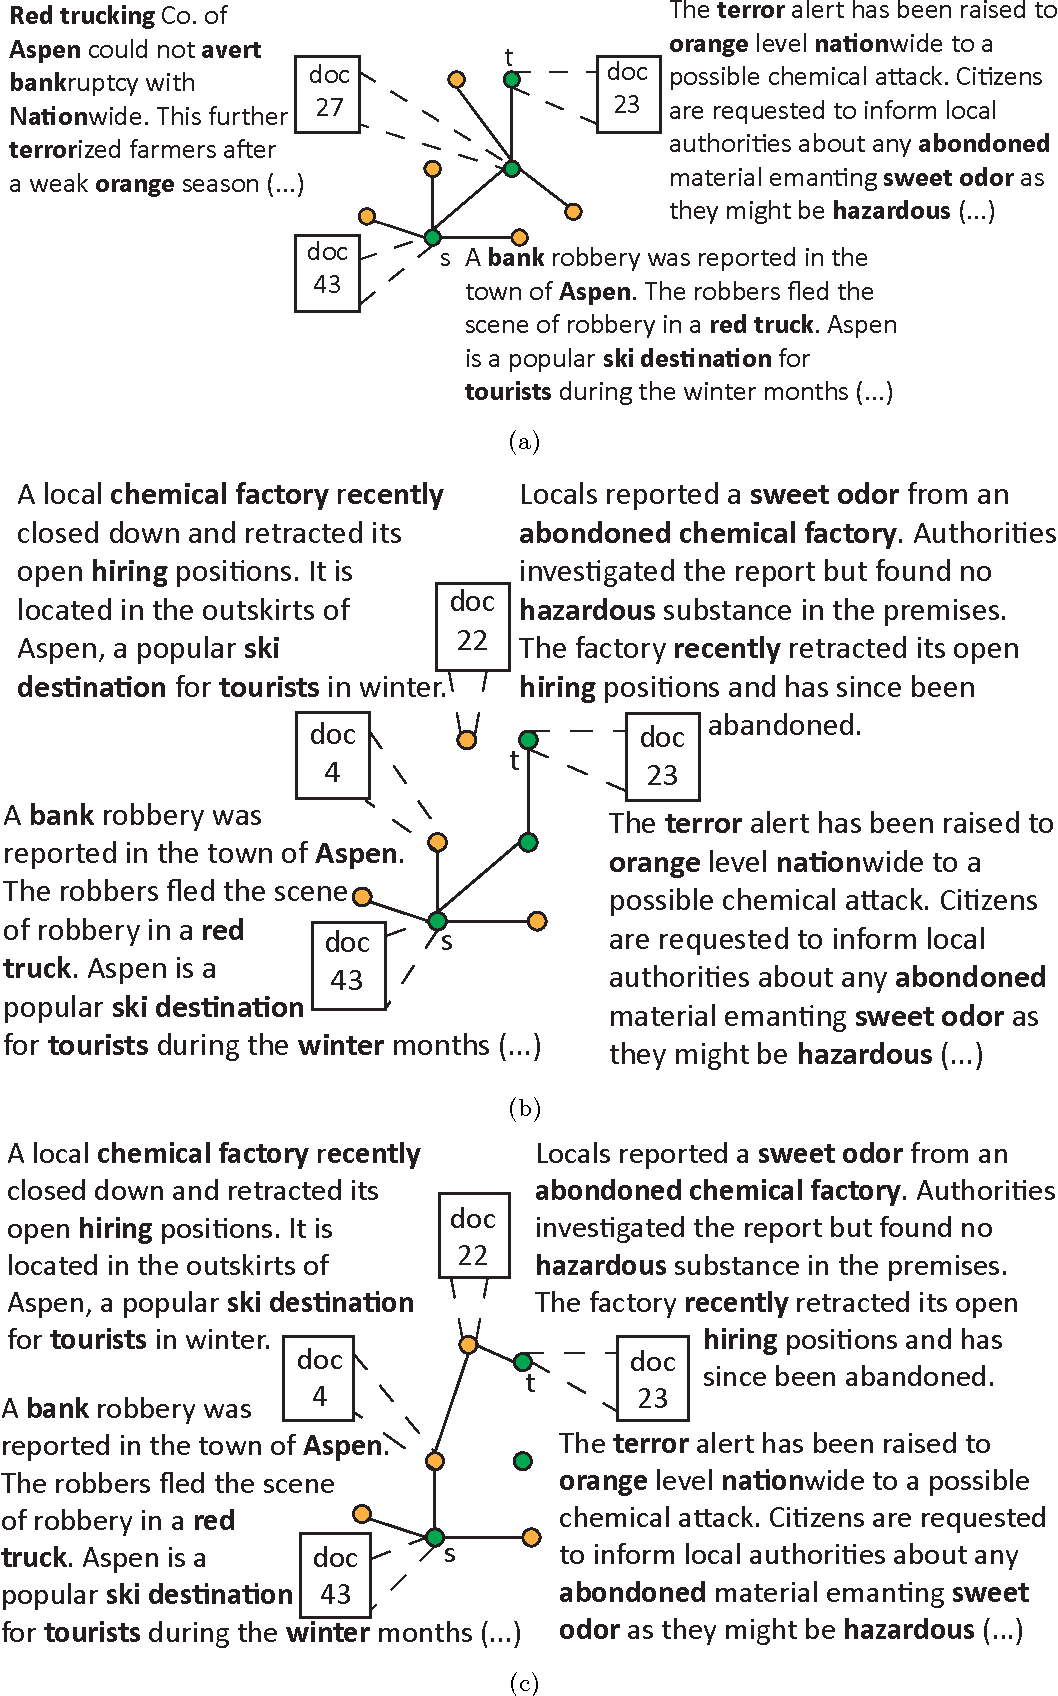 Figure 1 for Interactive Storytelling over Document Collections